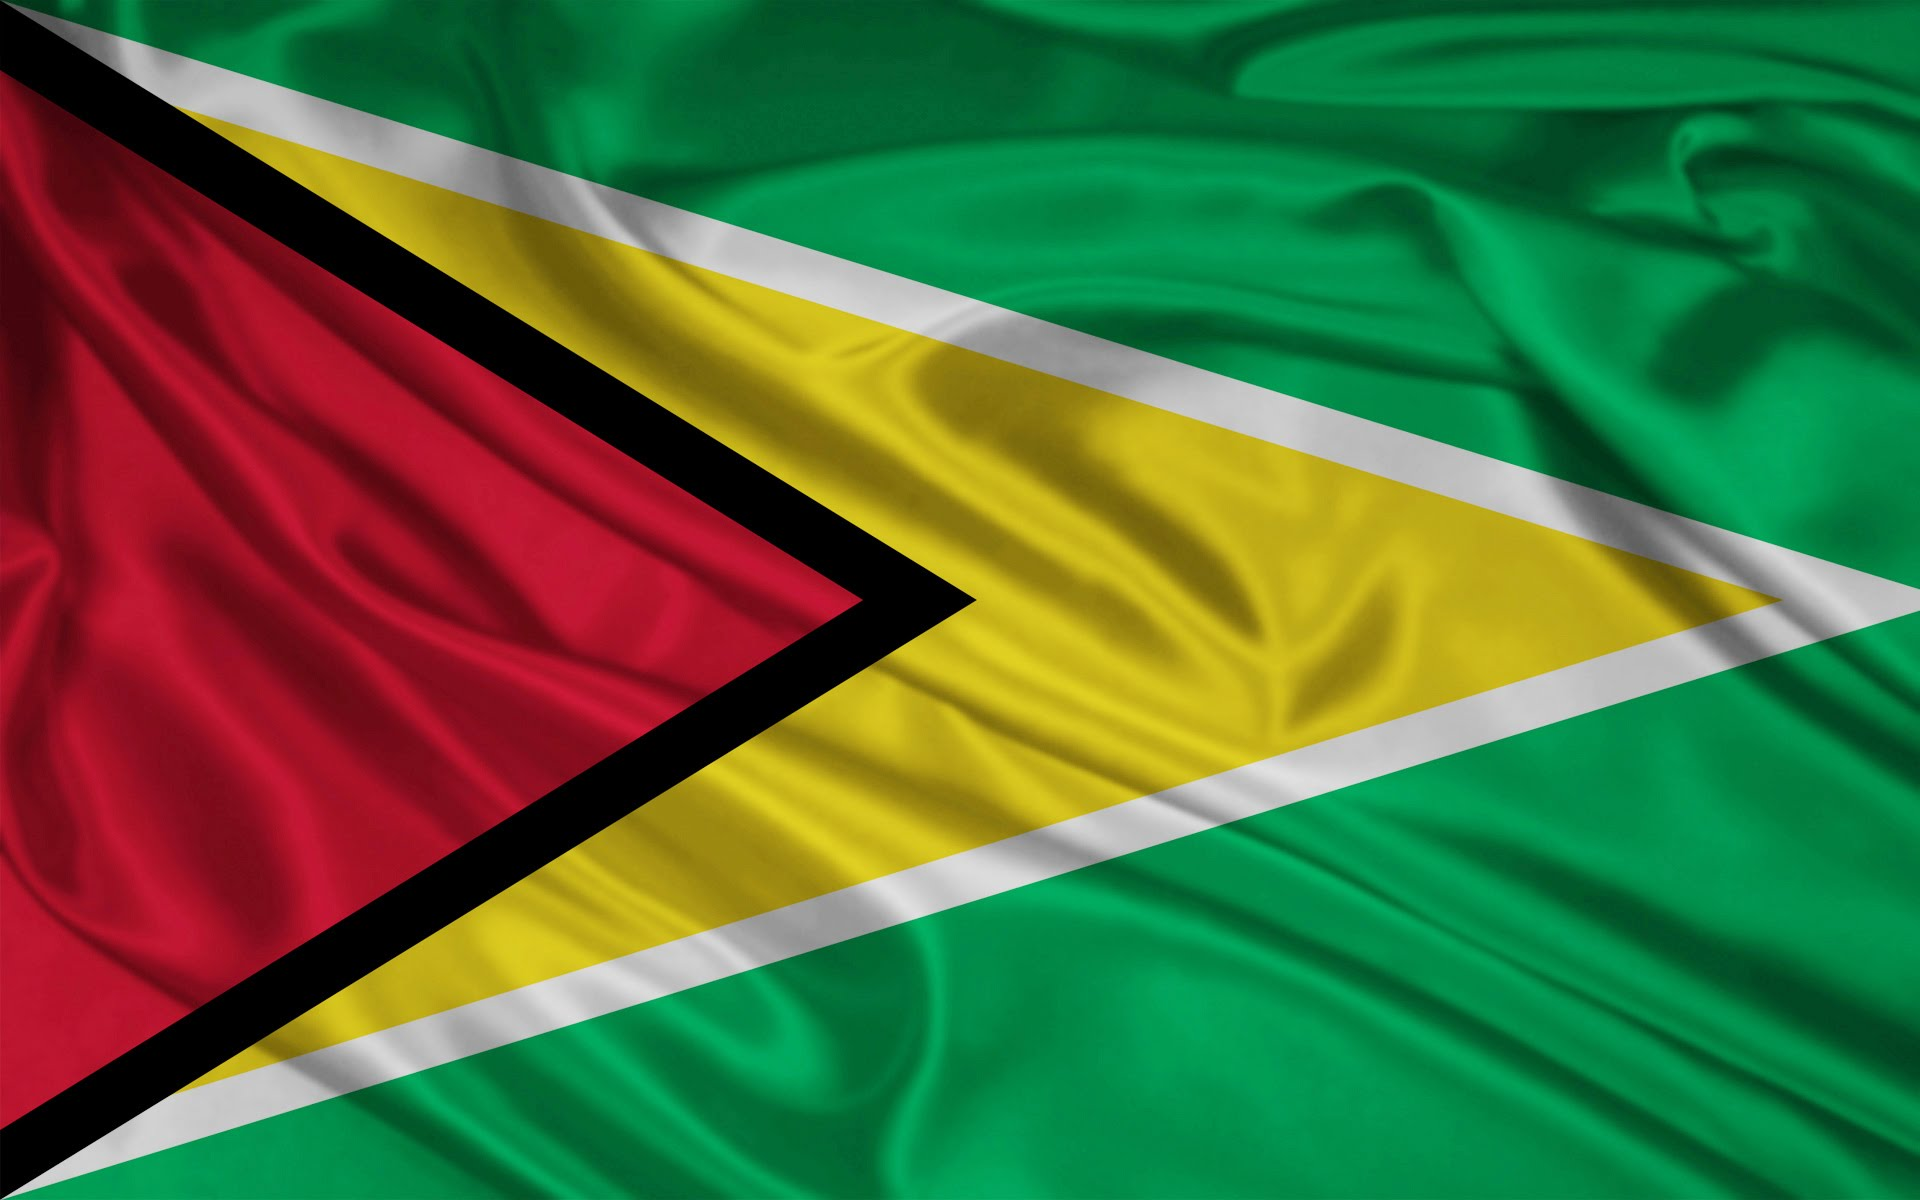 a history of guyana and its The role of the bank of guyana is to act as the central bank of guyana its brief history there are five currency notes issued by the bank of guyana.